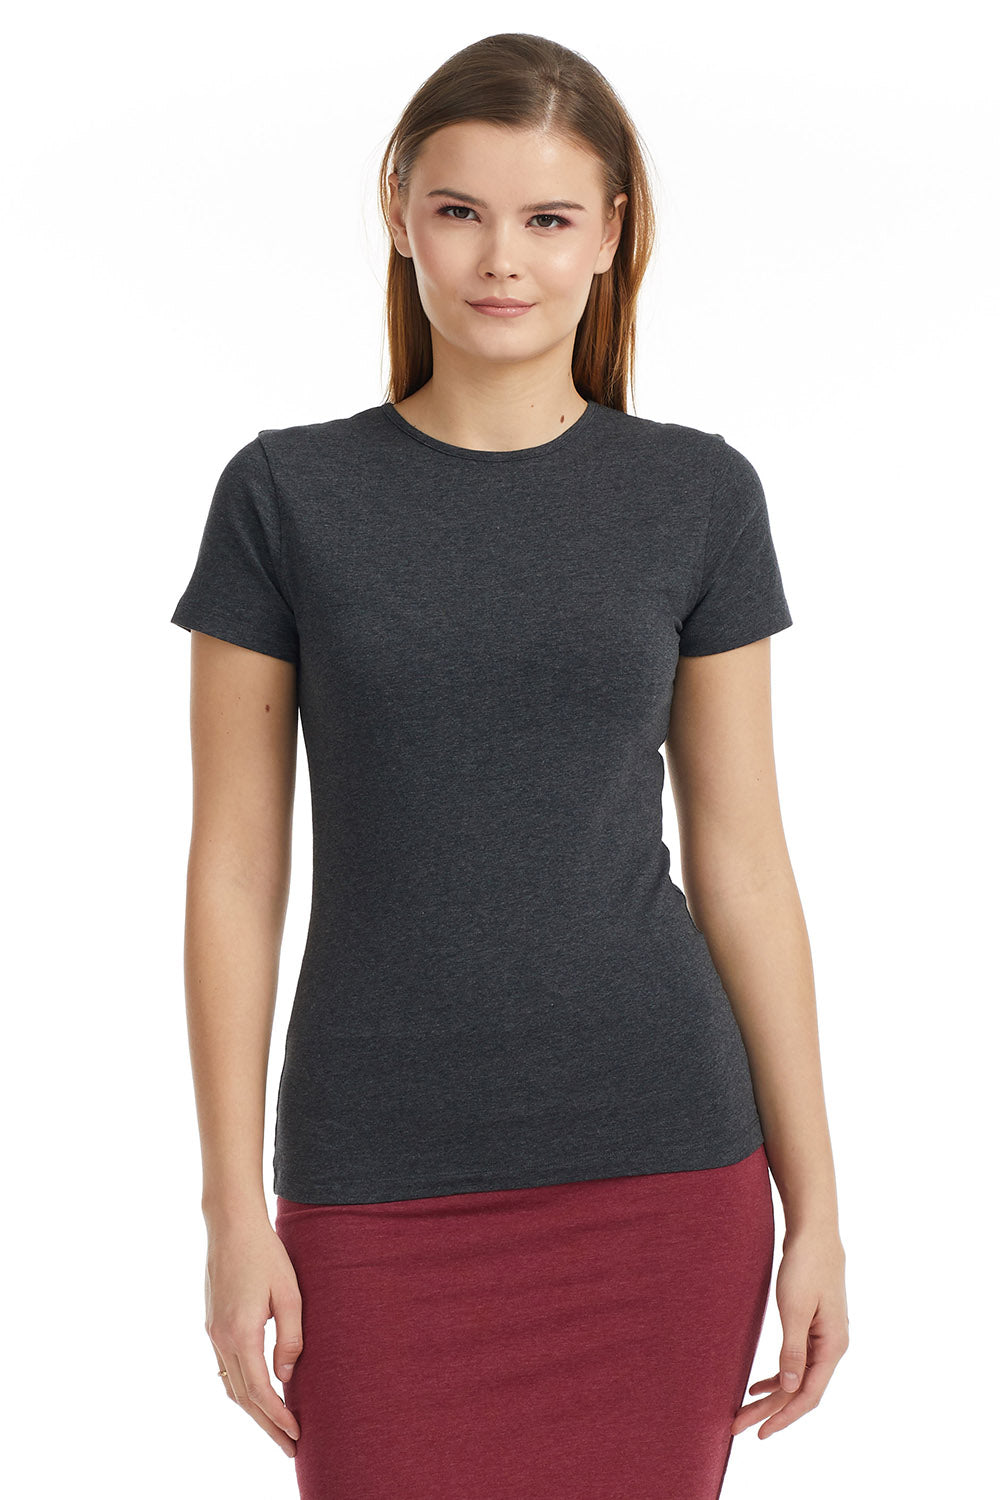 Esteez Short Sleeve Cotton Spandex Layering T-Shirt for WOMEN – CHARCOAL